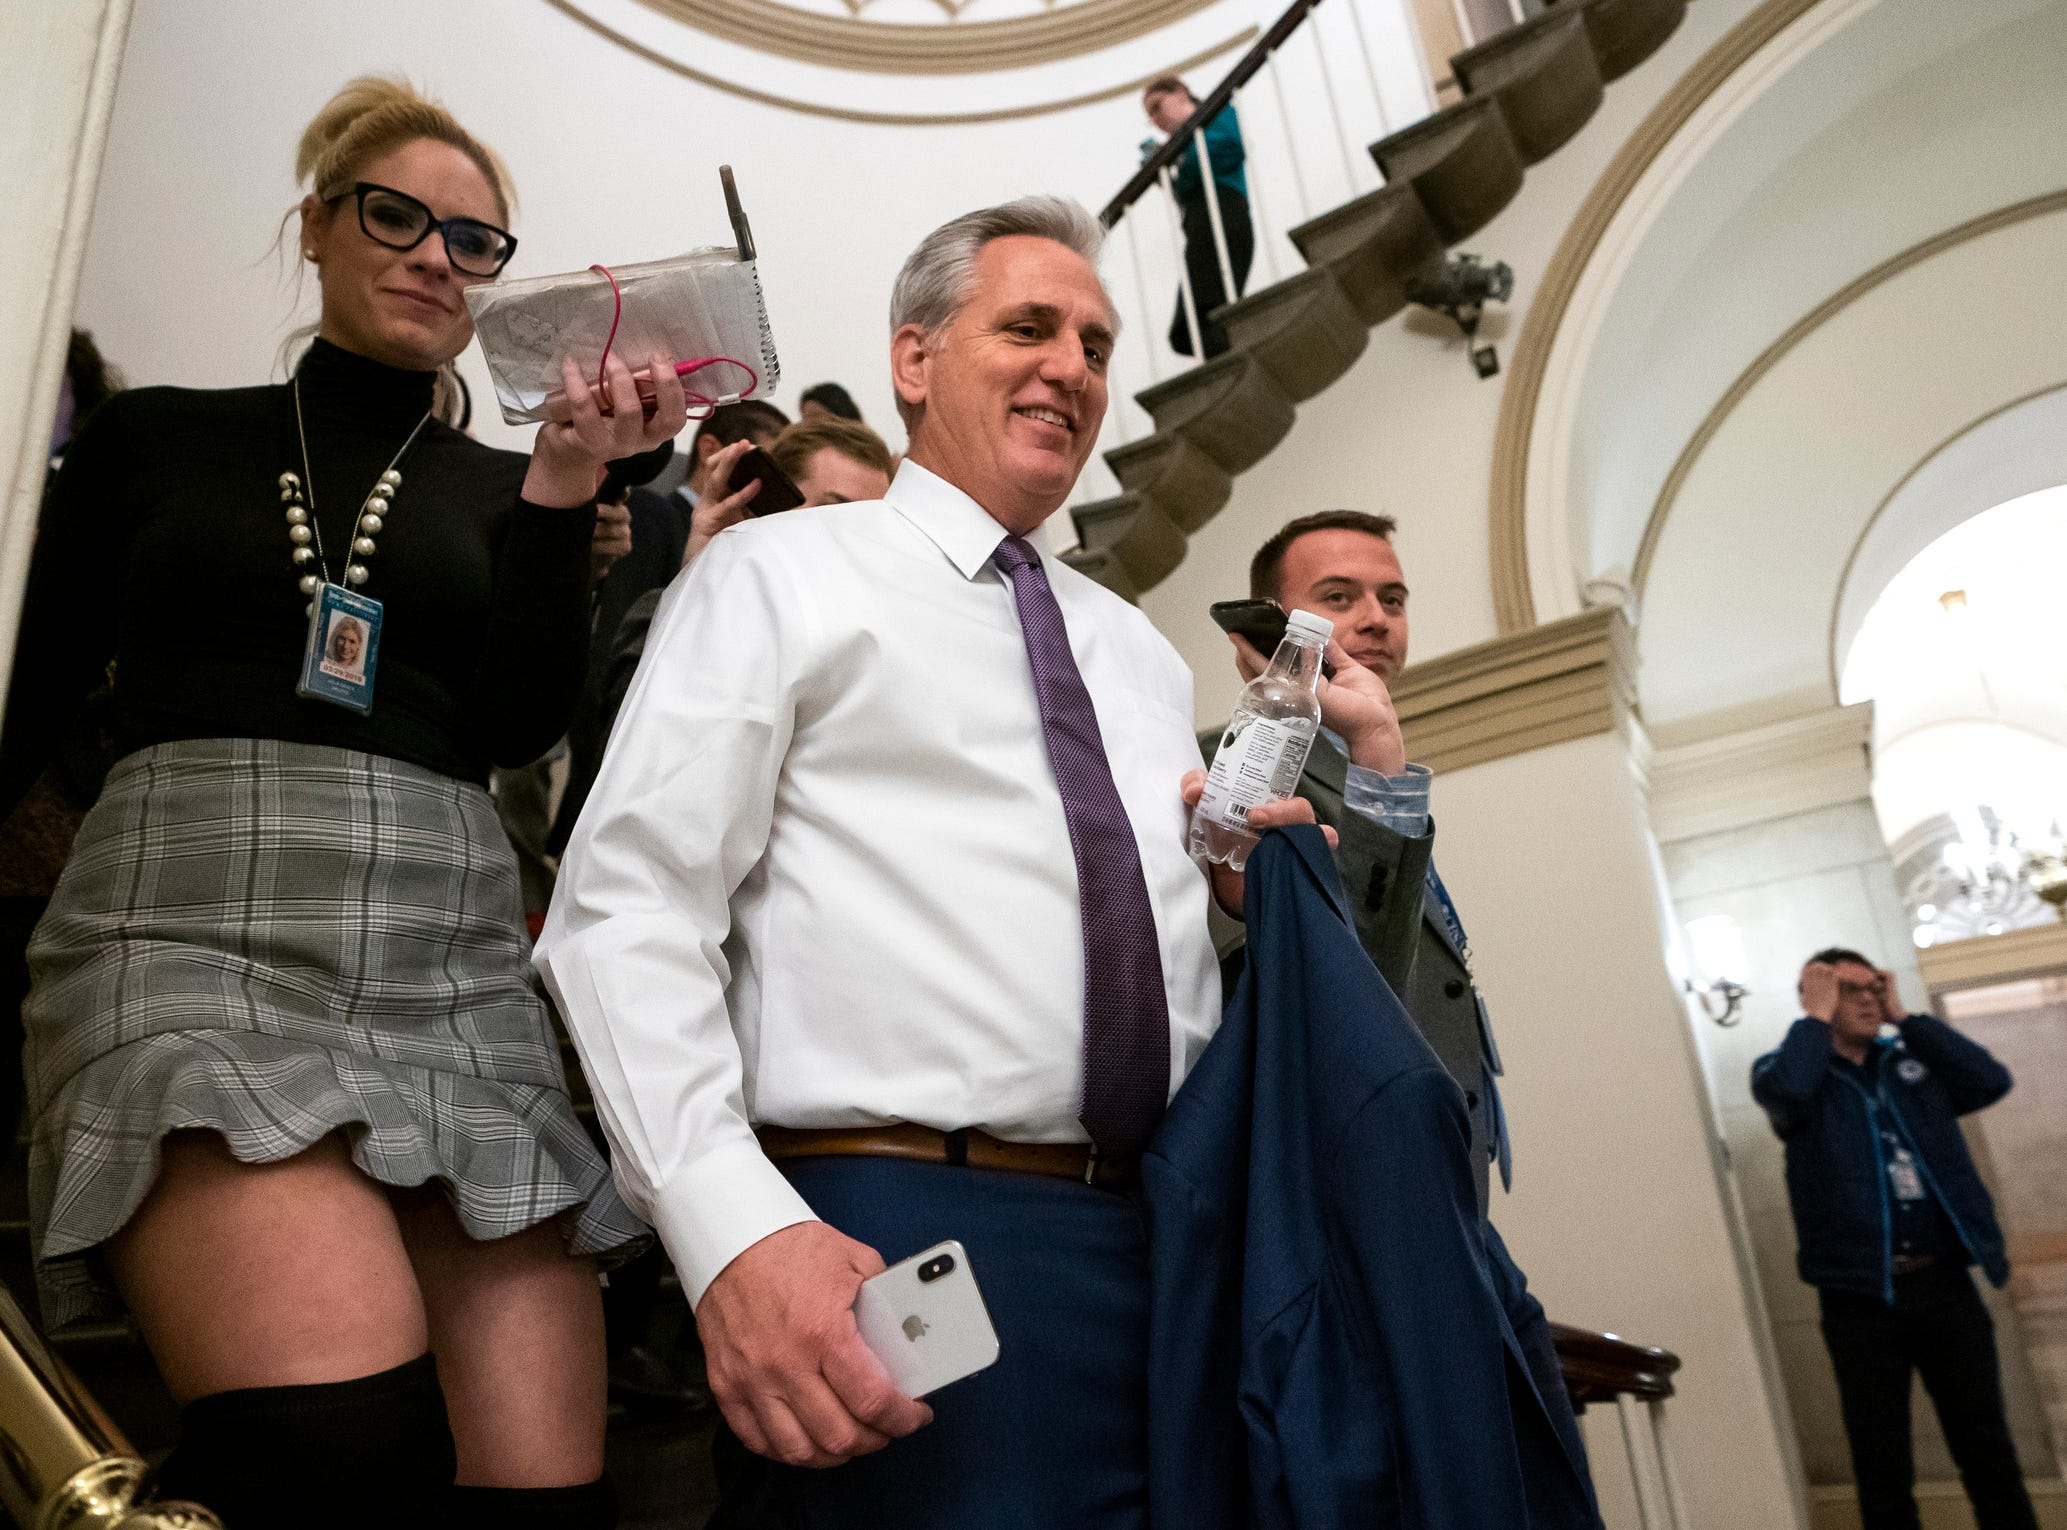 Republican Majority Whip from California Kevin McCarthy (C) leaves the Capitol, Thursday, for the White House to negotiate a budget vote to avert a government shutdown in the US Capitol. The Senate passed a continuing resolution on Wednesday, to keep the government open until February 2019. Others are not identified members of the media.